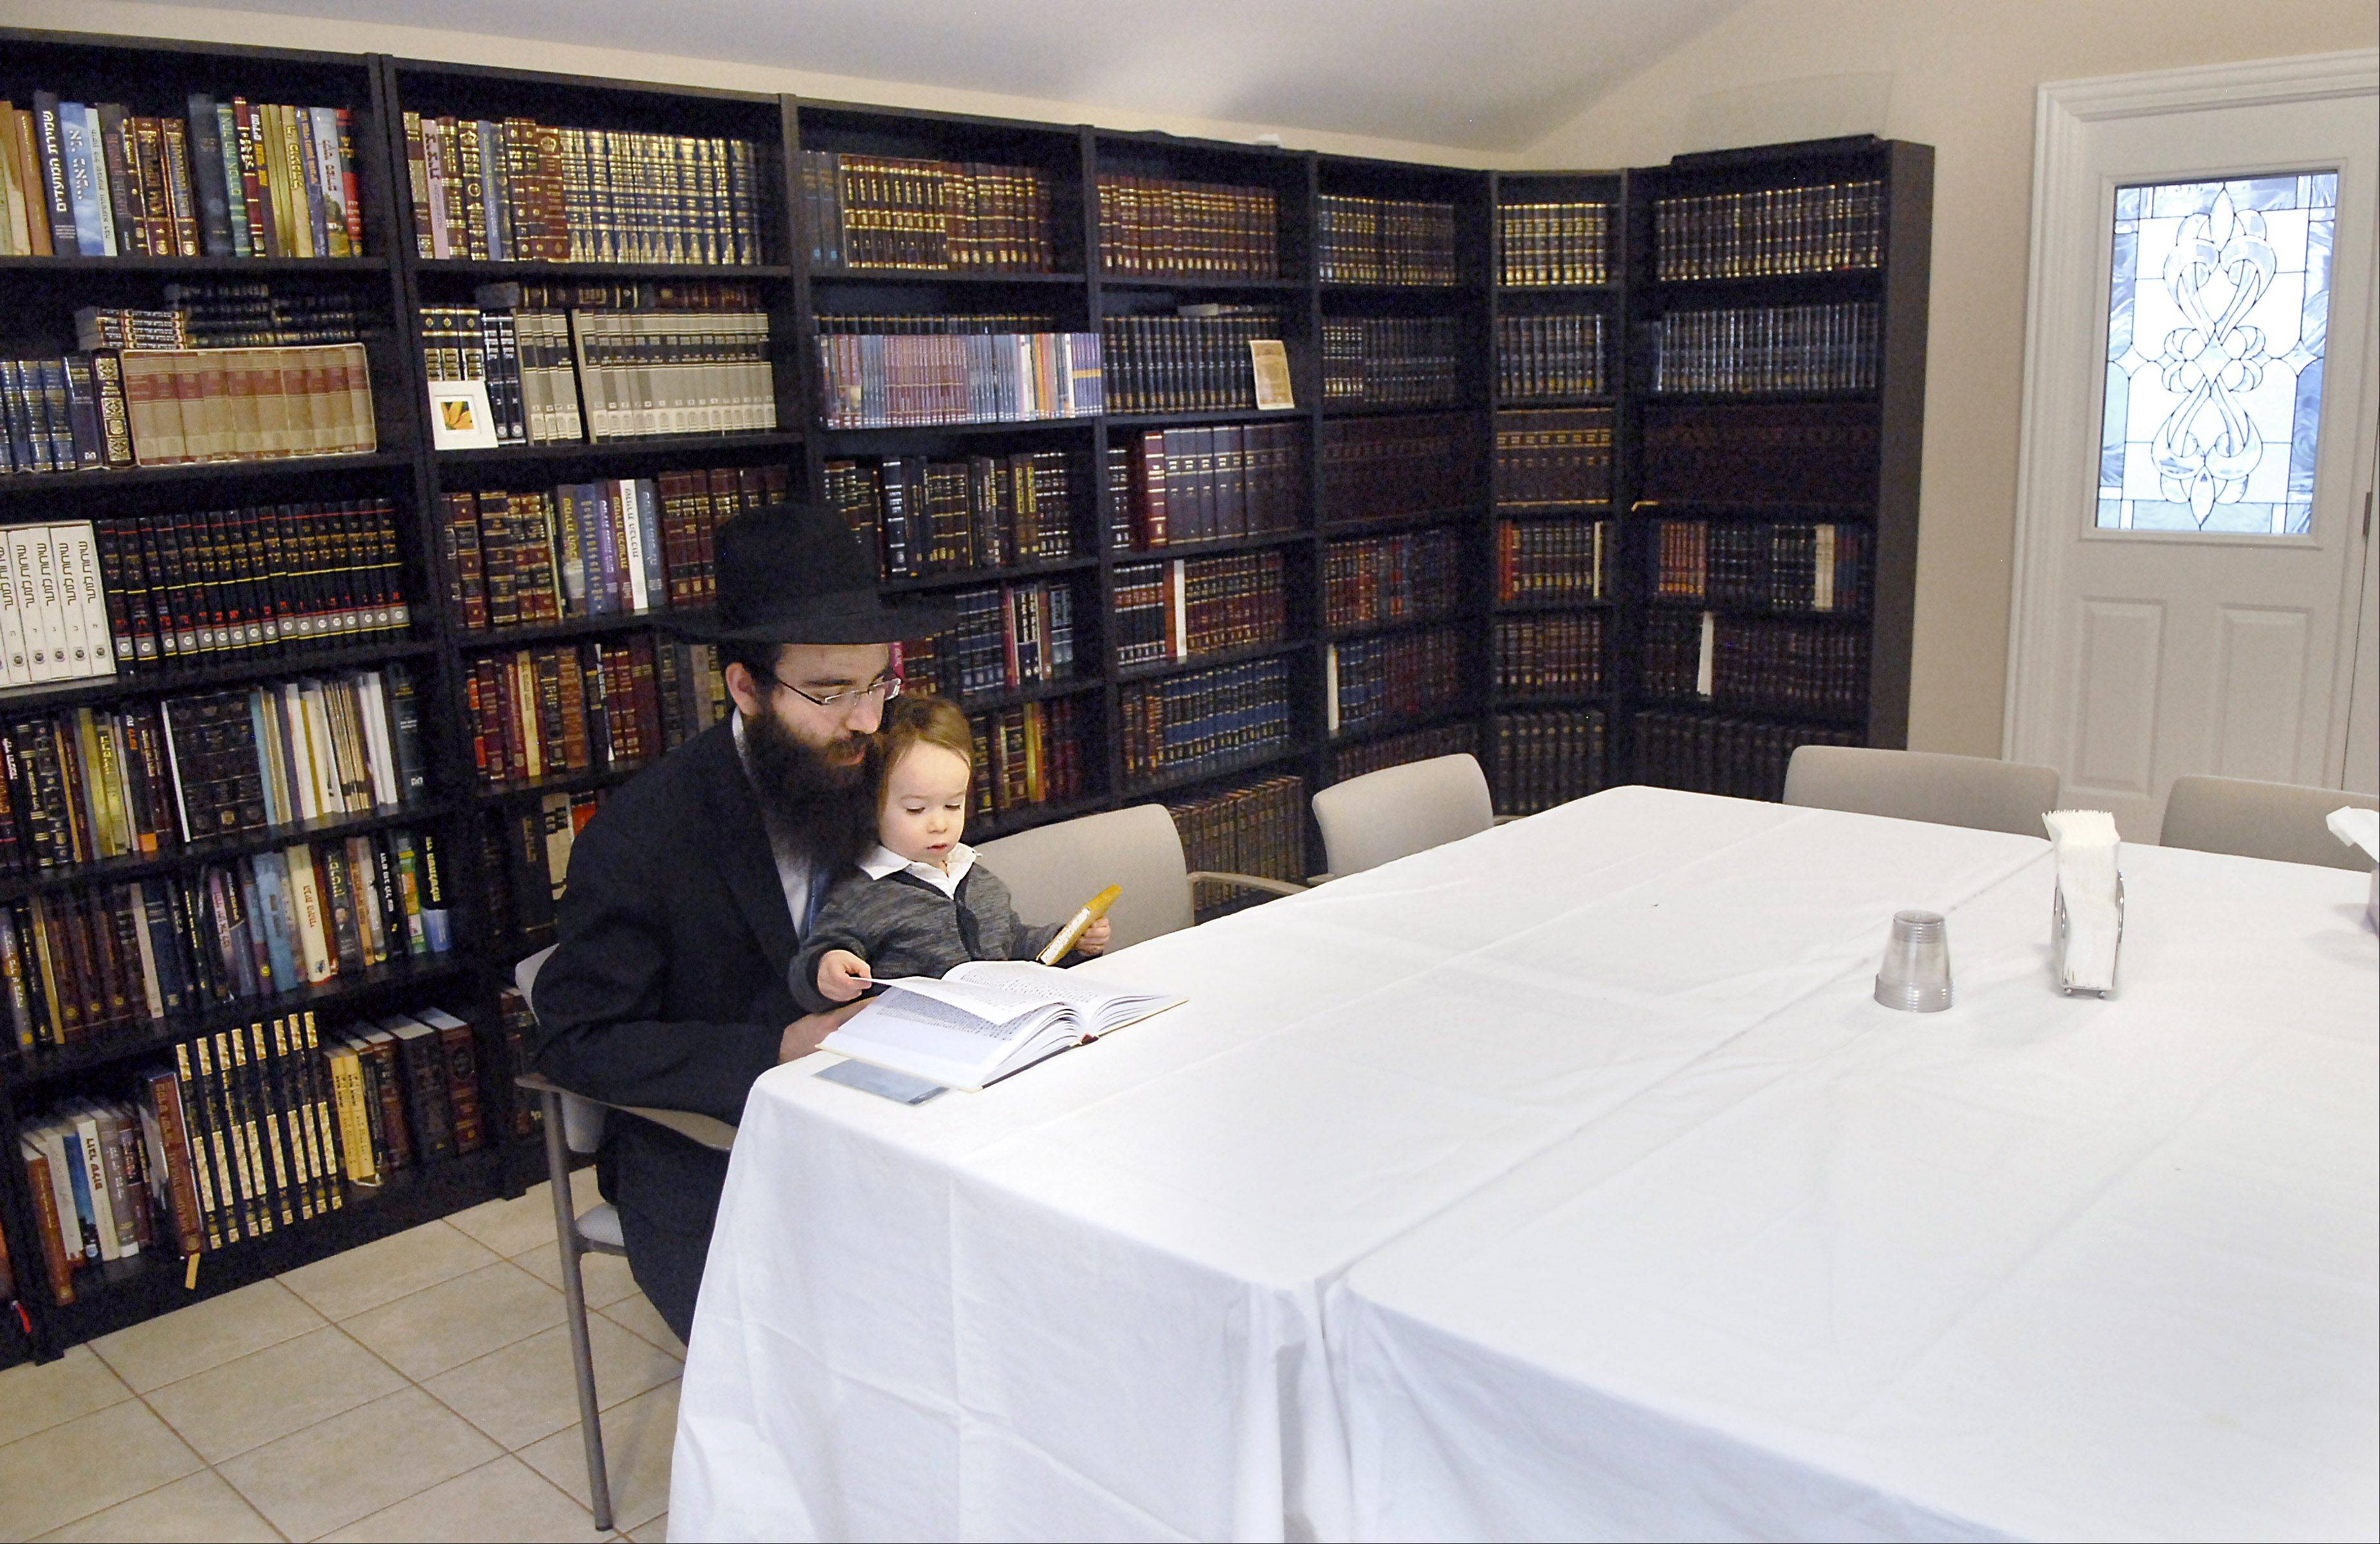 Rabbi Mendel Shemtov and his son, Levi, 21 months, read in the room where classes are offered for adults and children at the Chabad of Elgin & Hoffman Estates.